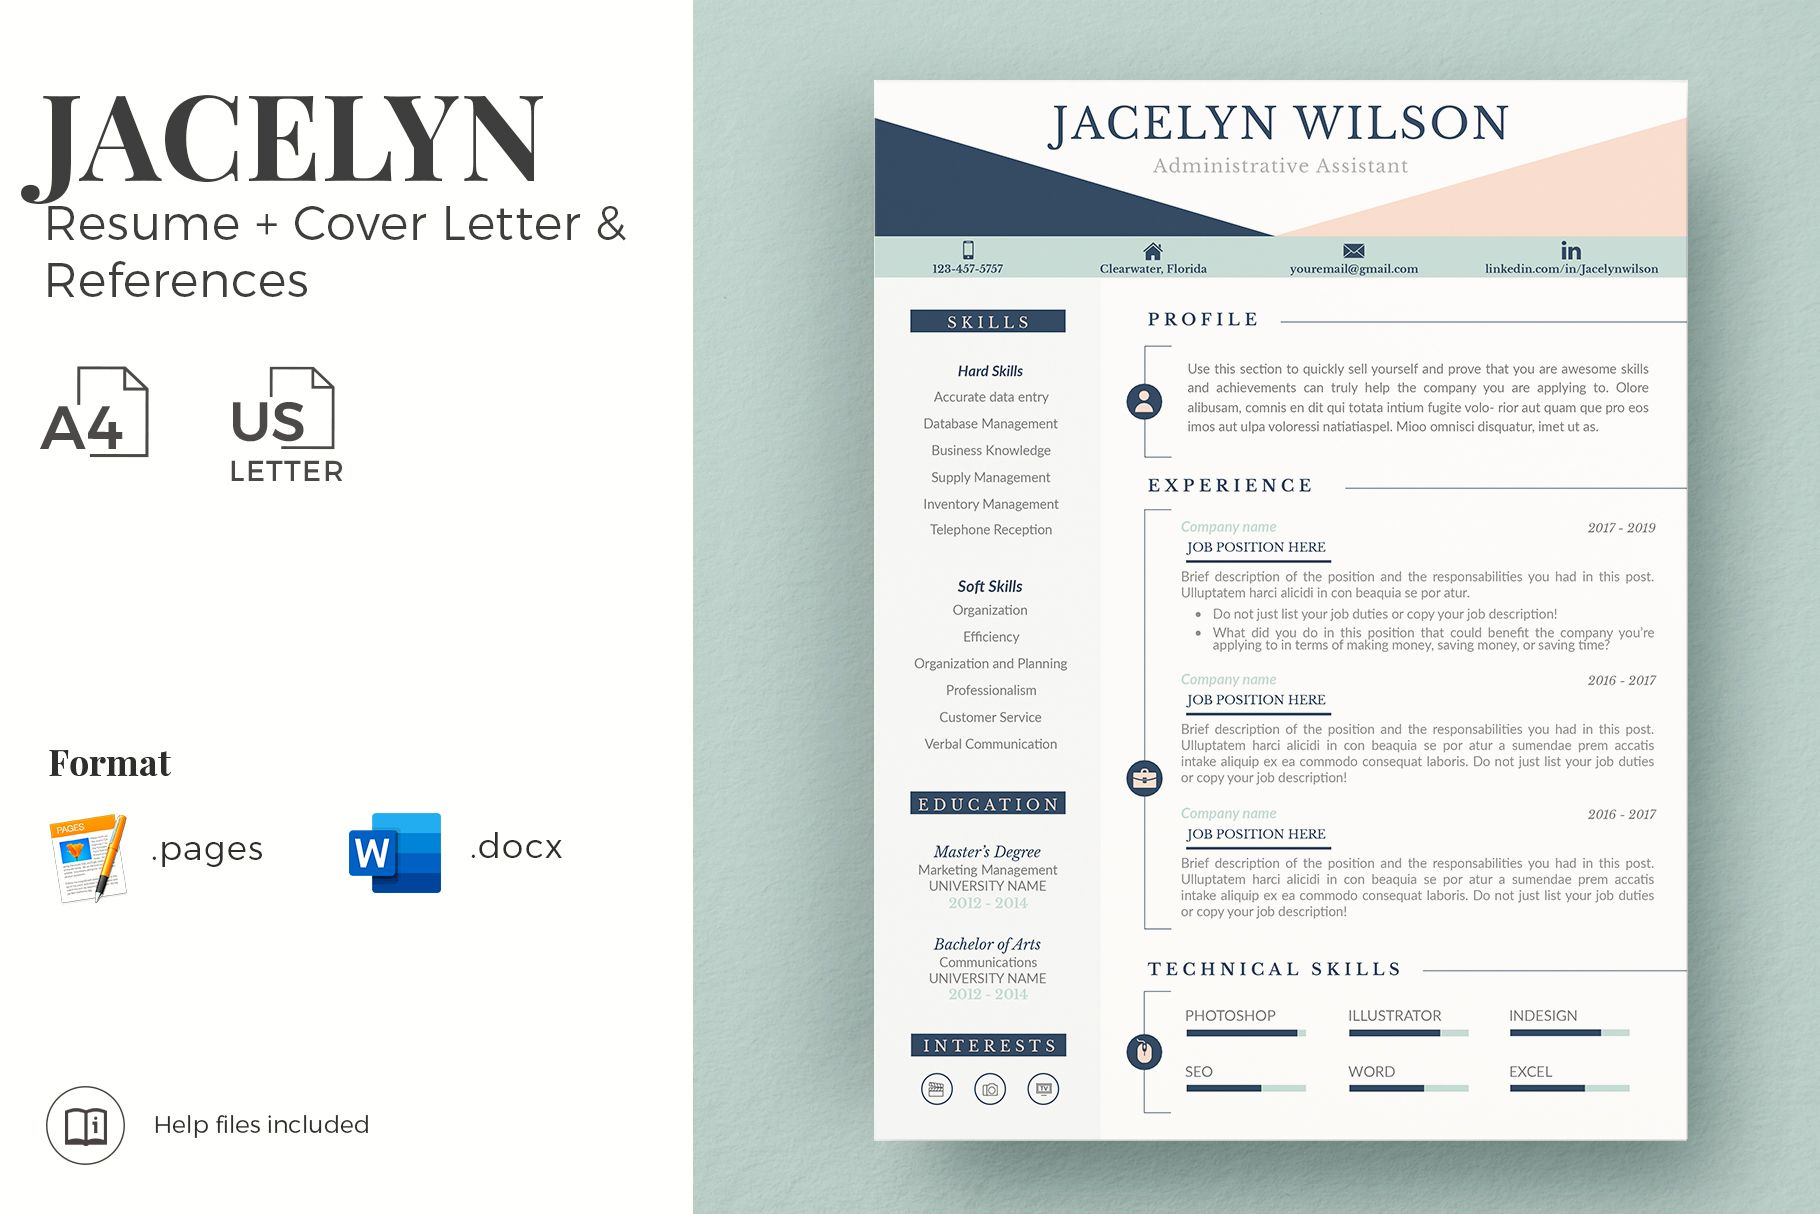 R50 Jacelyn Wilson Creative Resume Format For Freshers Professional Resume For Administrative Assistant Resume Cv Design For Word Pages Matching Cove Resume Format For Freshers Creative